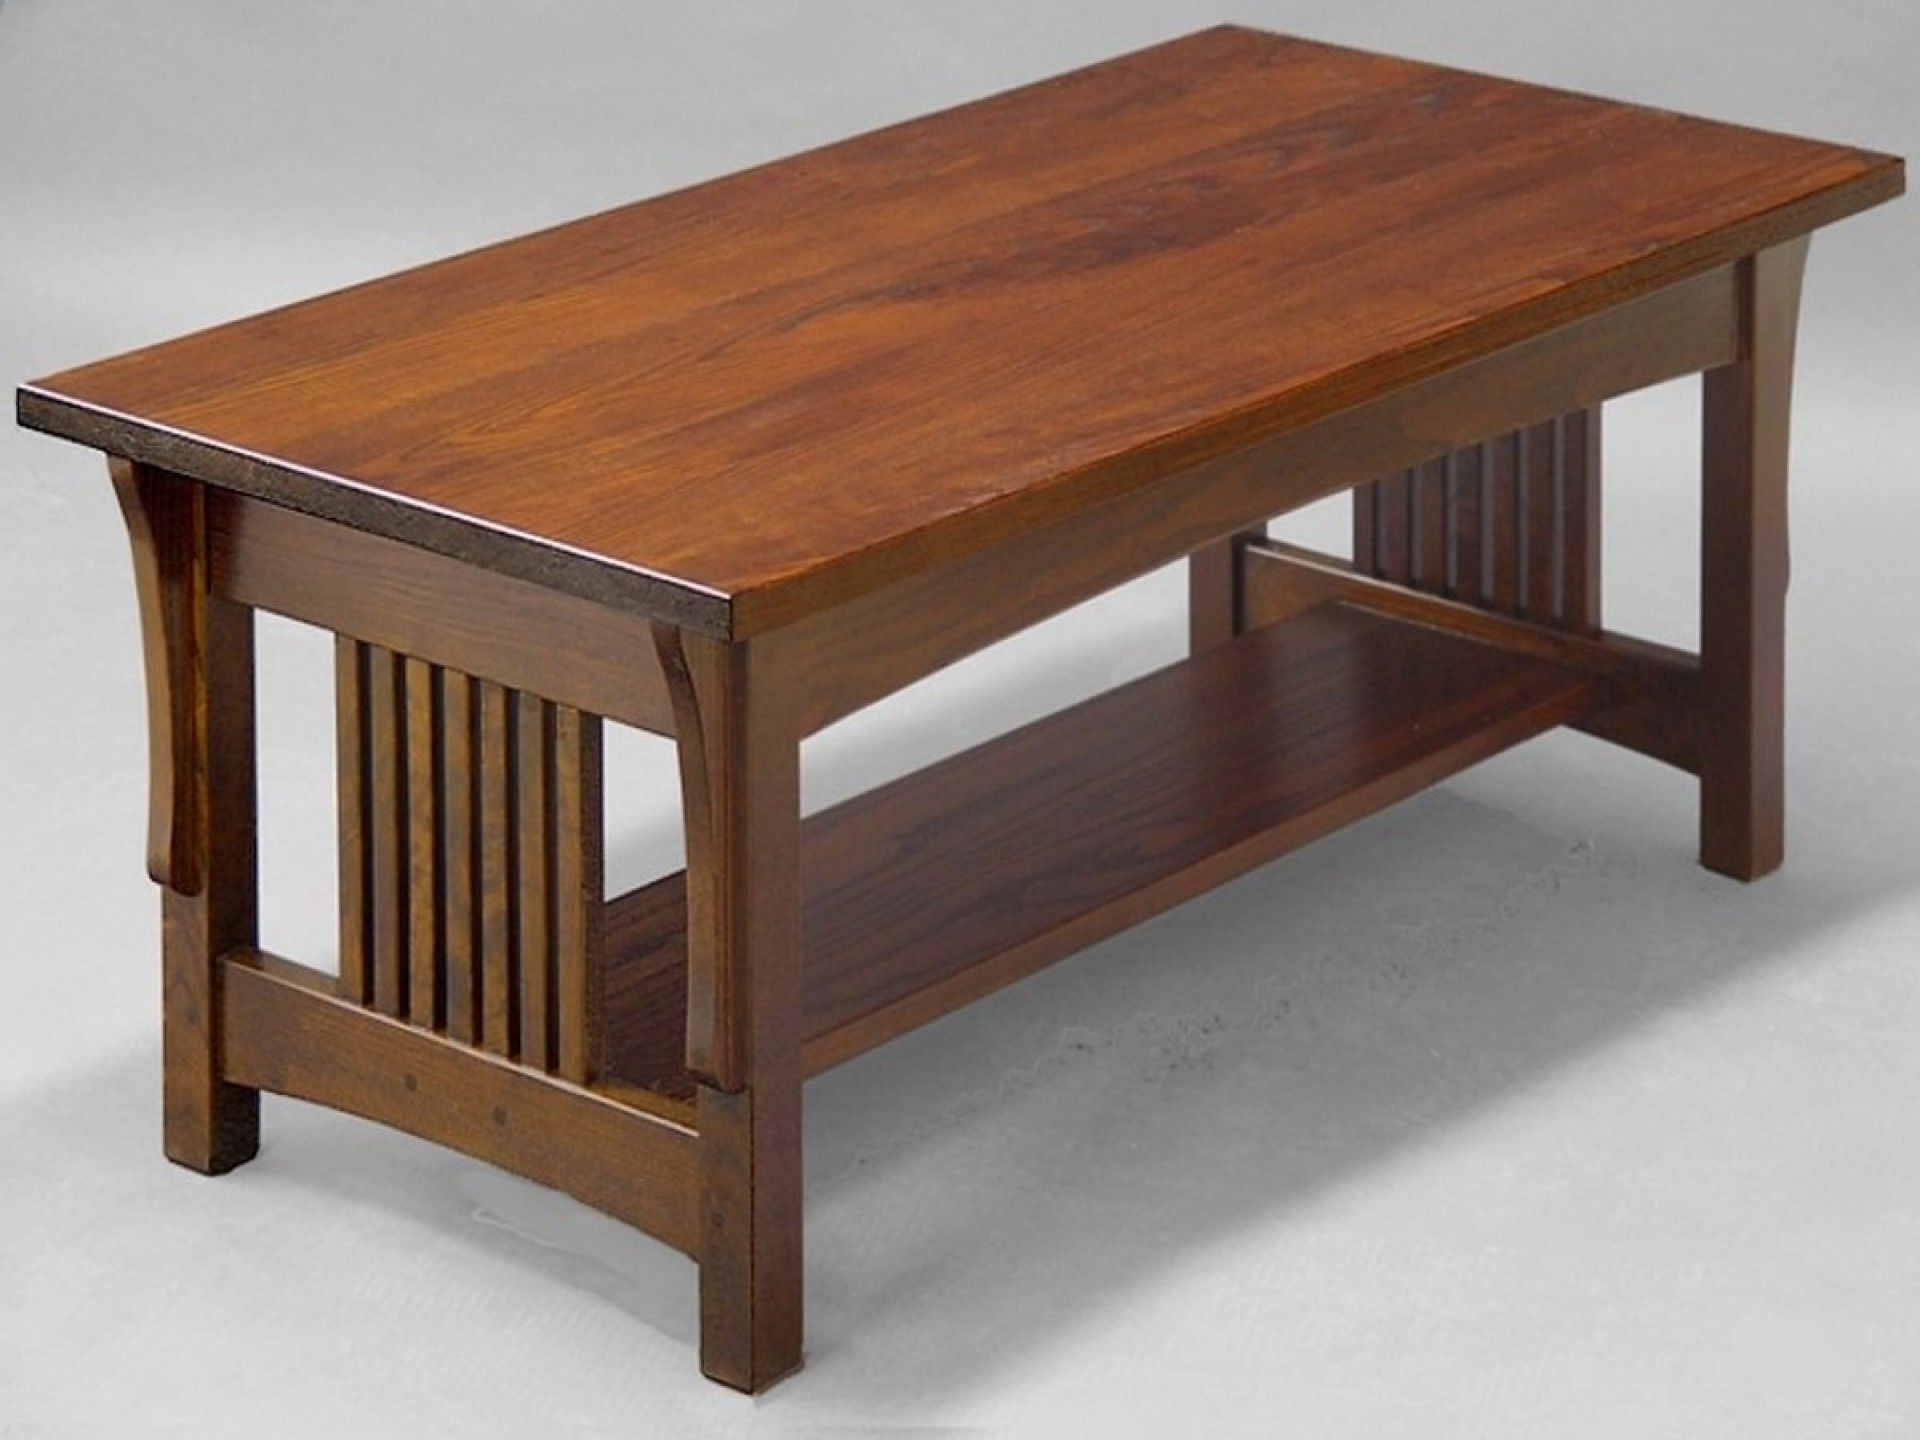 Newest Craftsman Cocktail Tables Regarding Coffee Table And End Tables Set For Sale Lovely Coffee Table And End (Gallery 14 of 20)